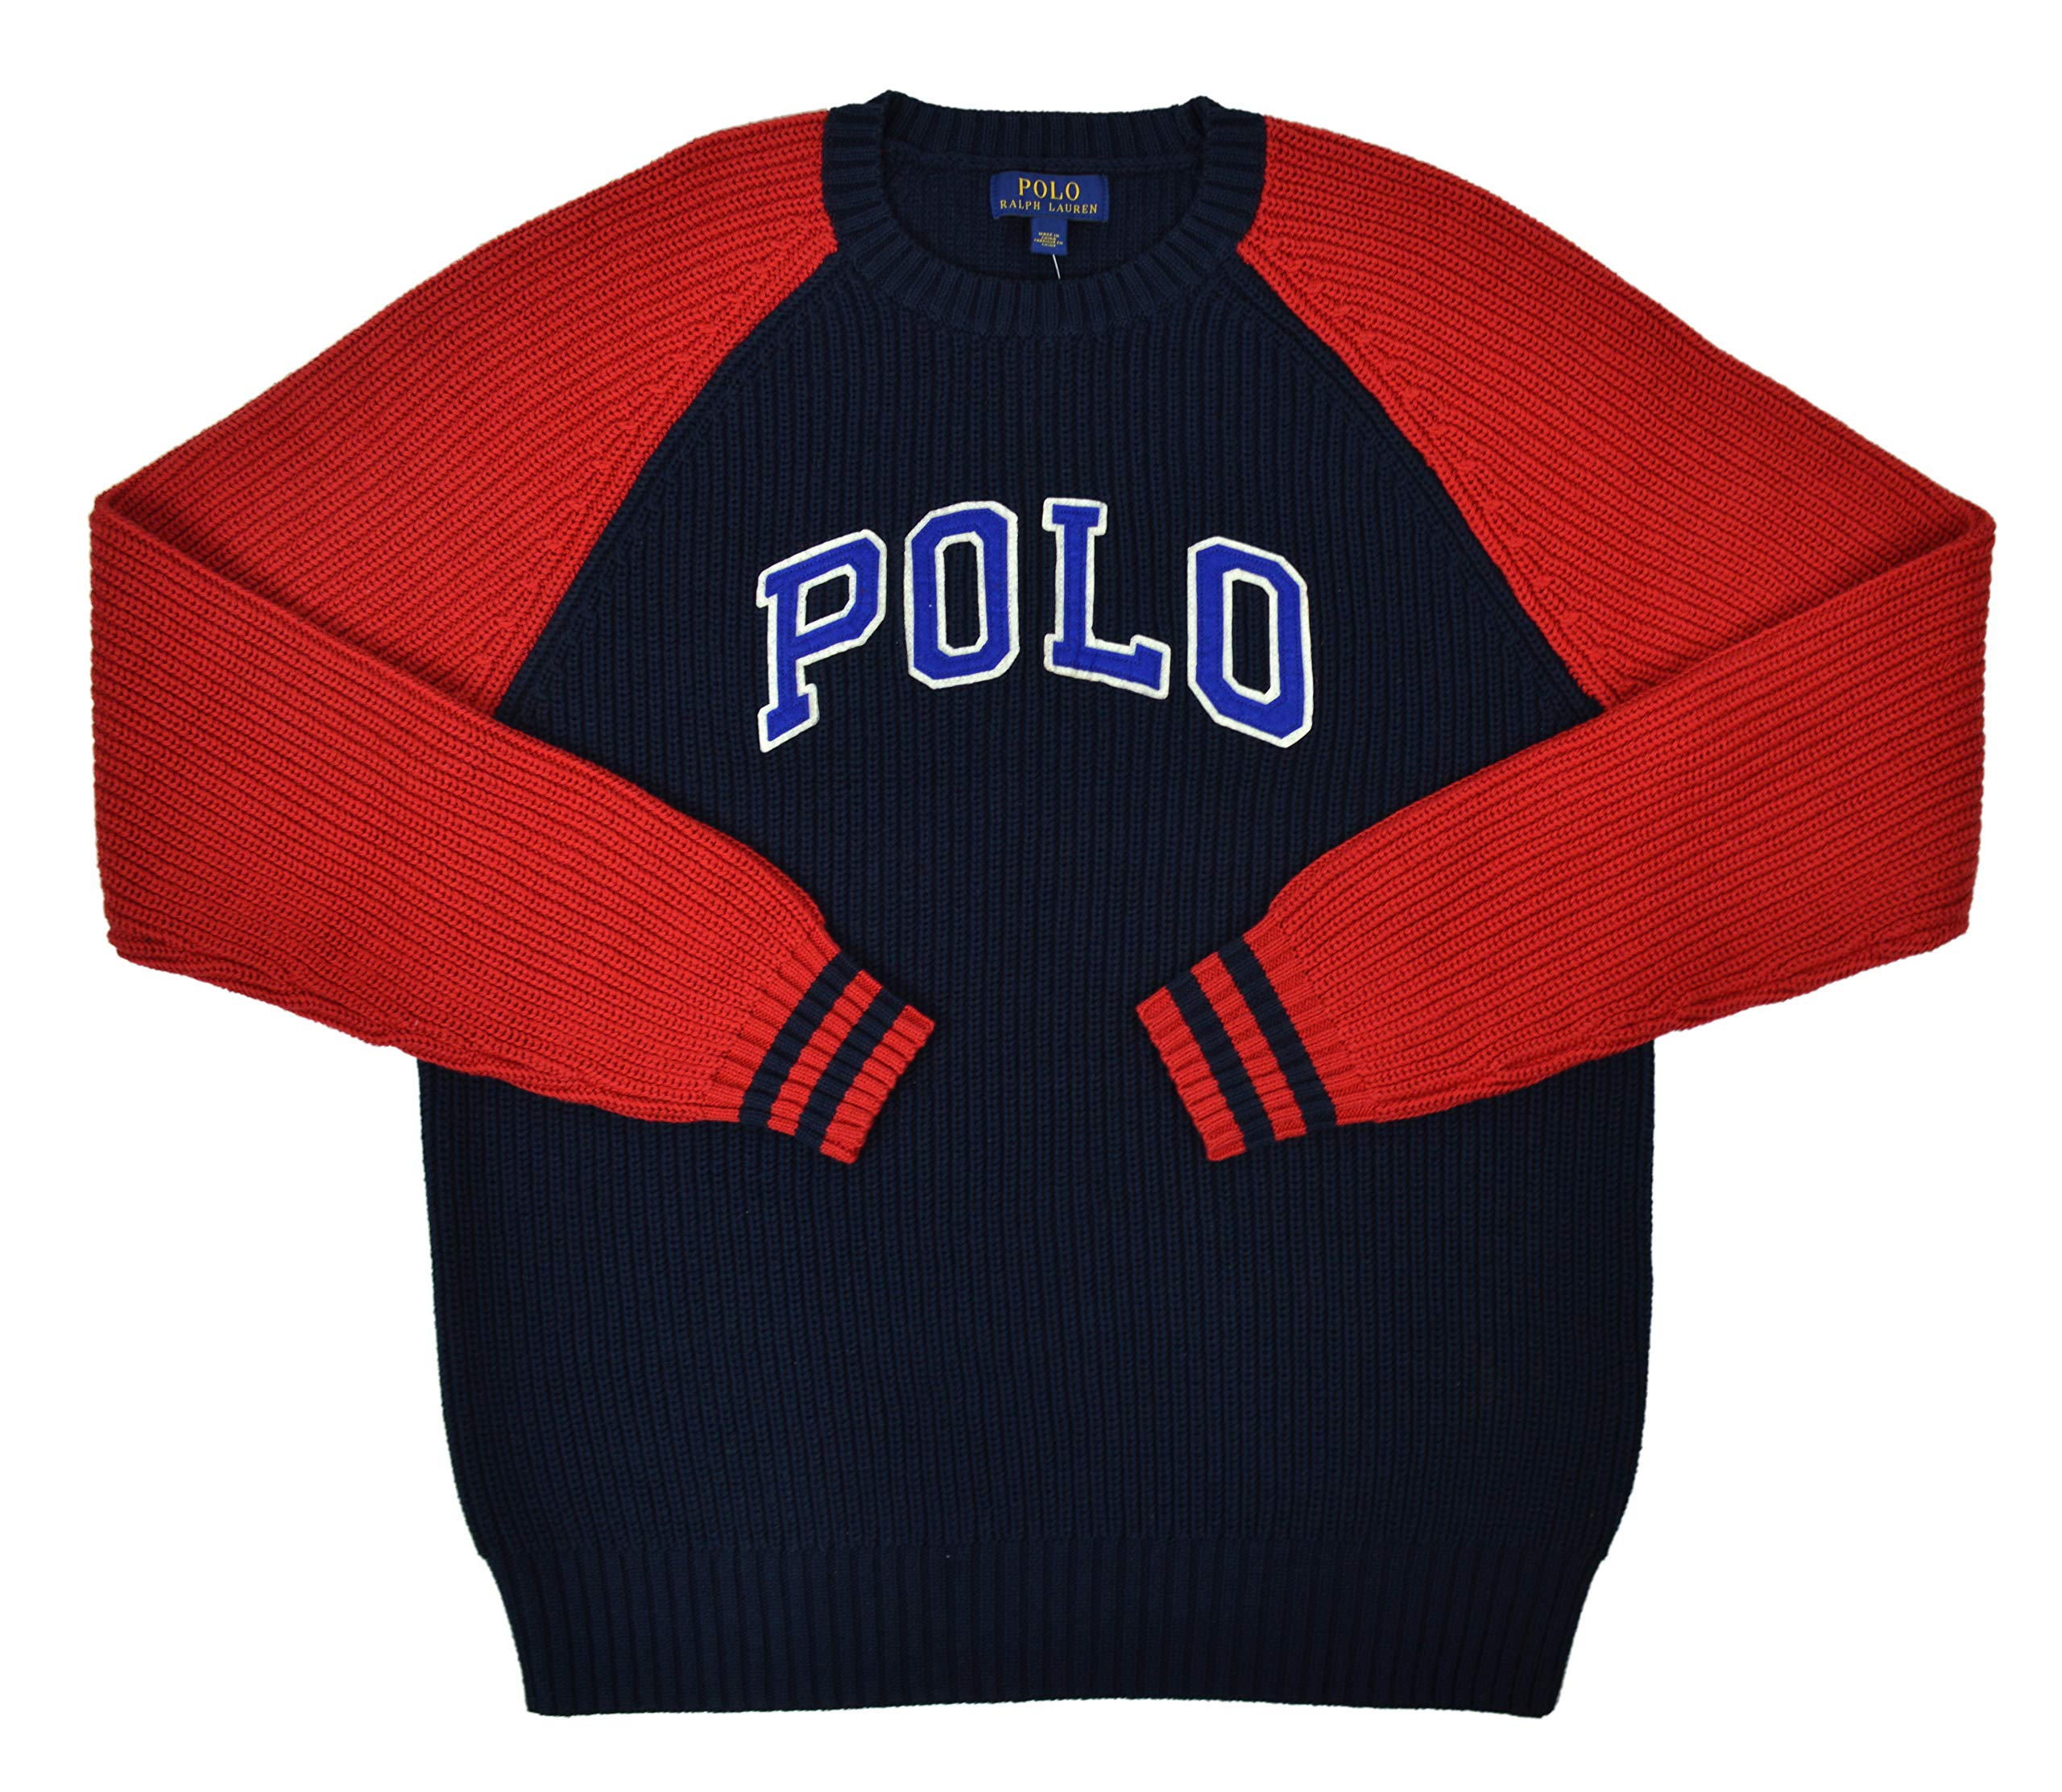 Polo Ralph Lauren Boys Two Tone Knit Crewneck Sweater Navy Blue Red (X-Large (18-20))